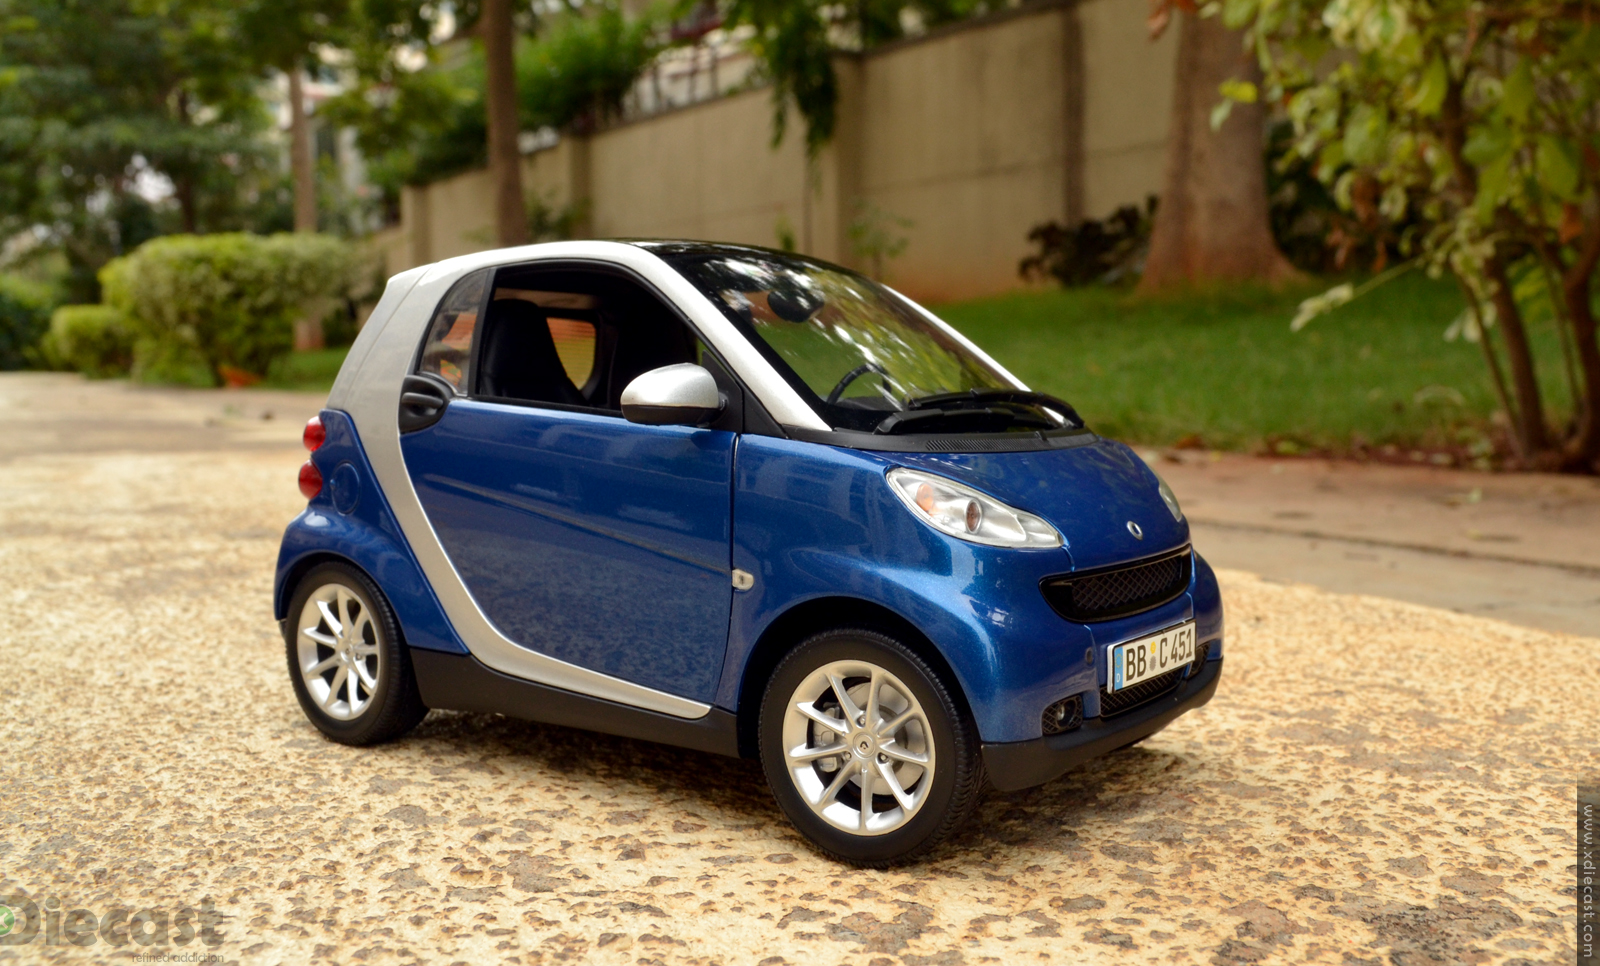 minichamps 2007 smart fortwo coupe diecast car review. Black Bedroom Furniture Sets. Home Design Ideas